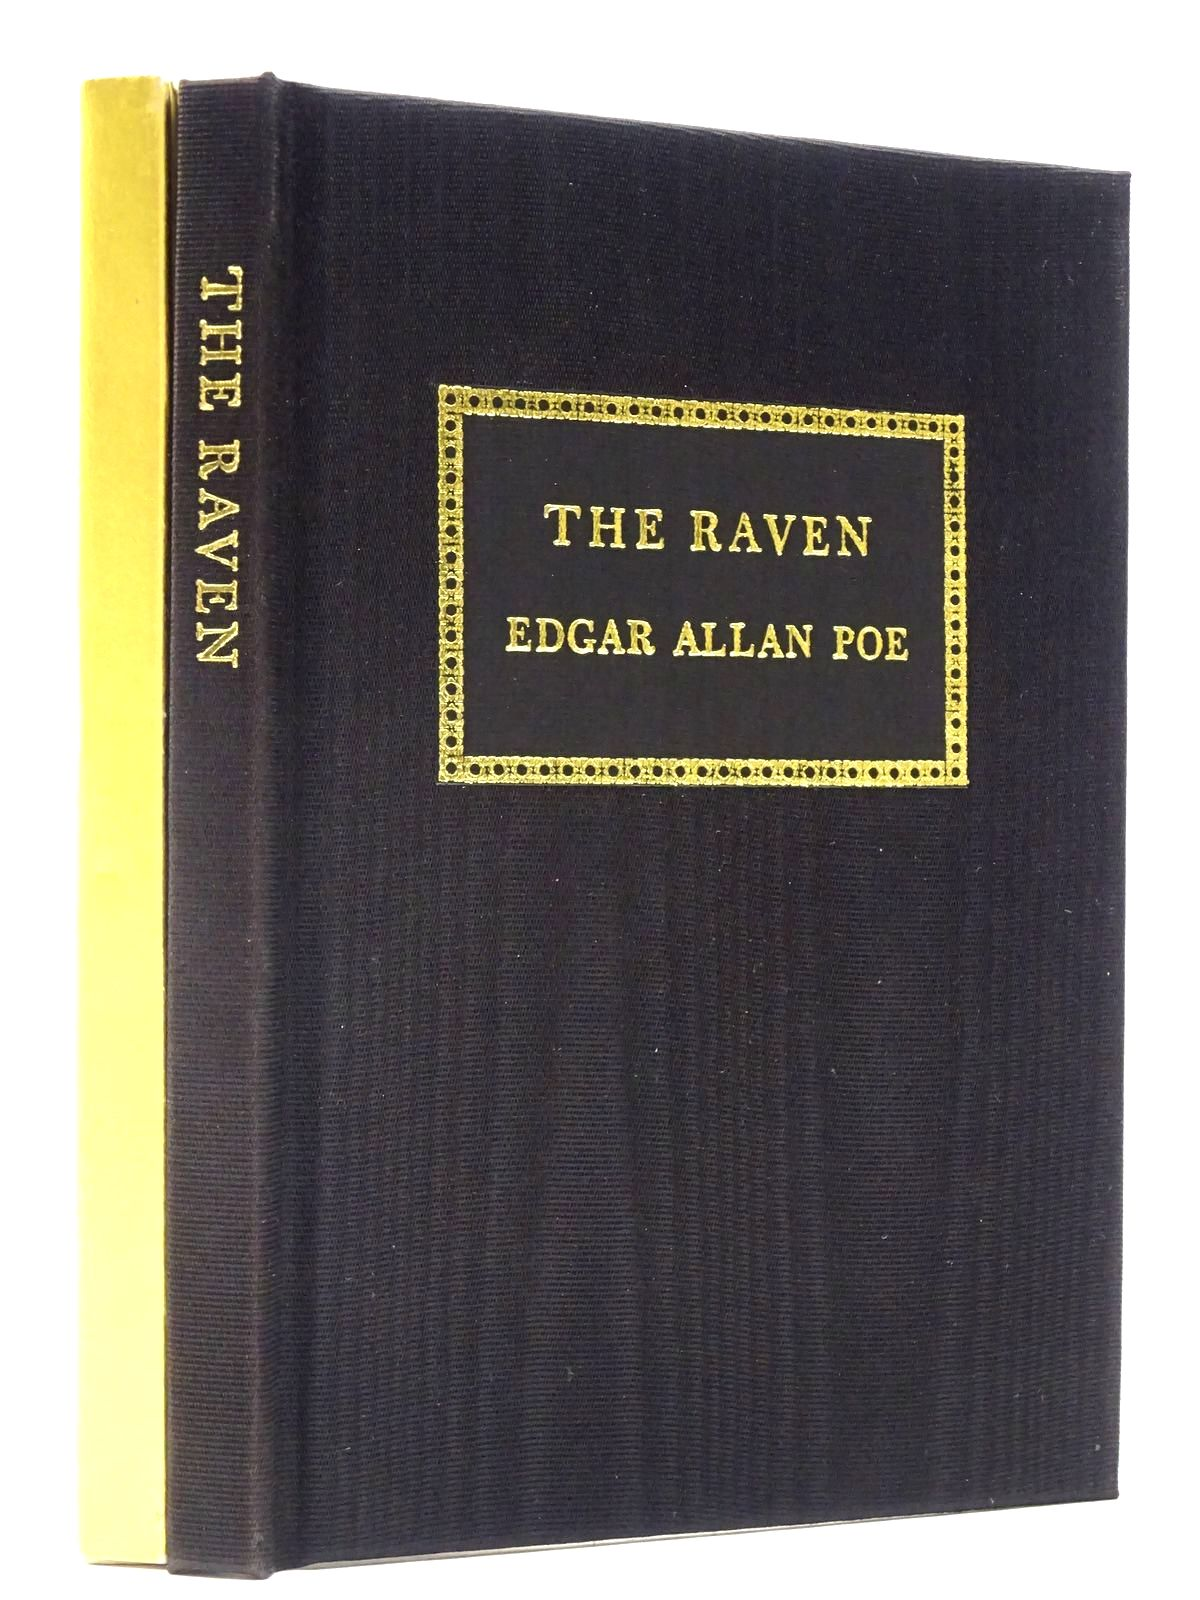 Photo of THE RAVEN written by Poe, Edgar Allan illustrated by Tute, George published by Folio Society (STOCK CODE: 2130028)  for sale by Stella & Rose's Books